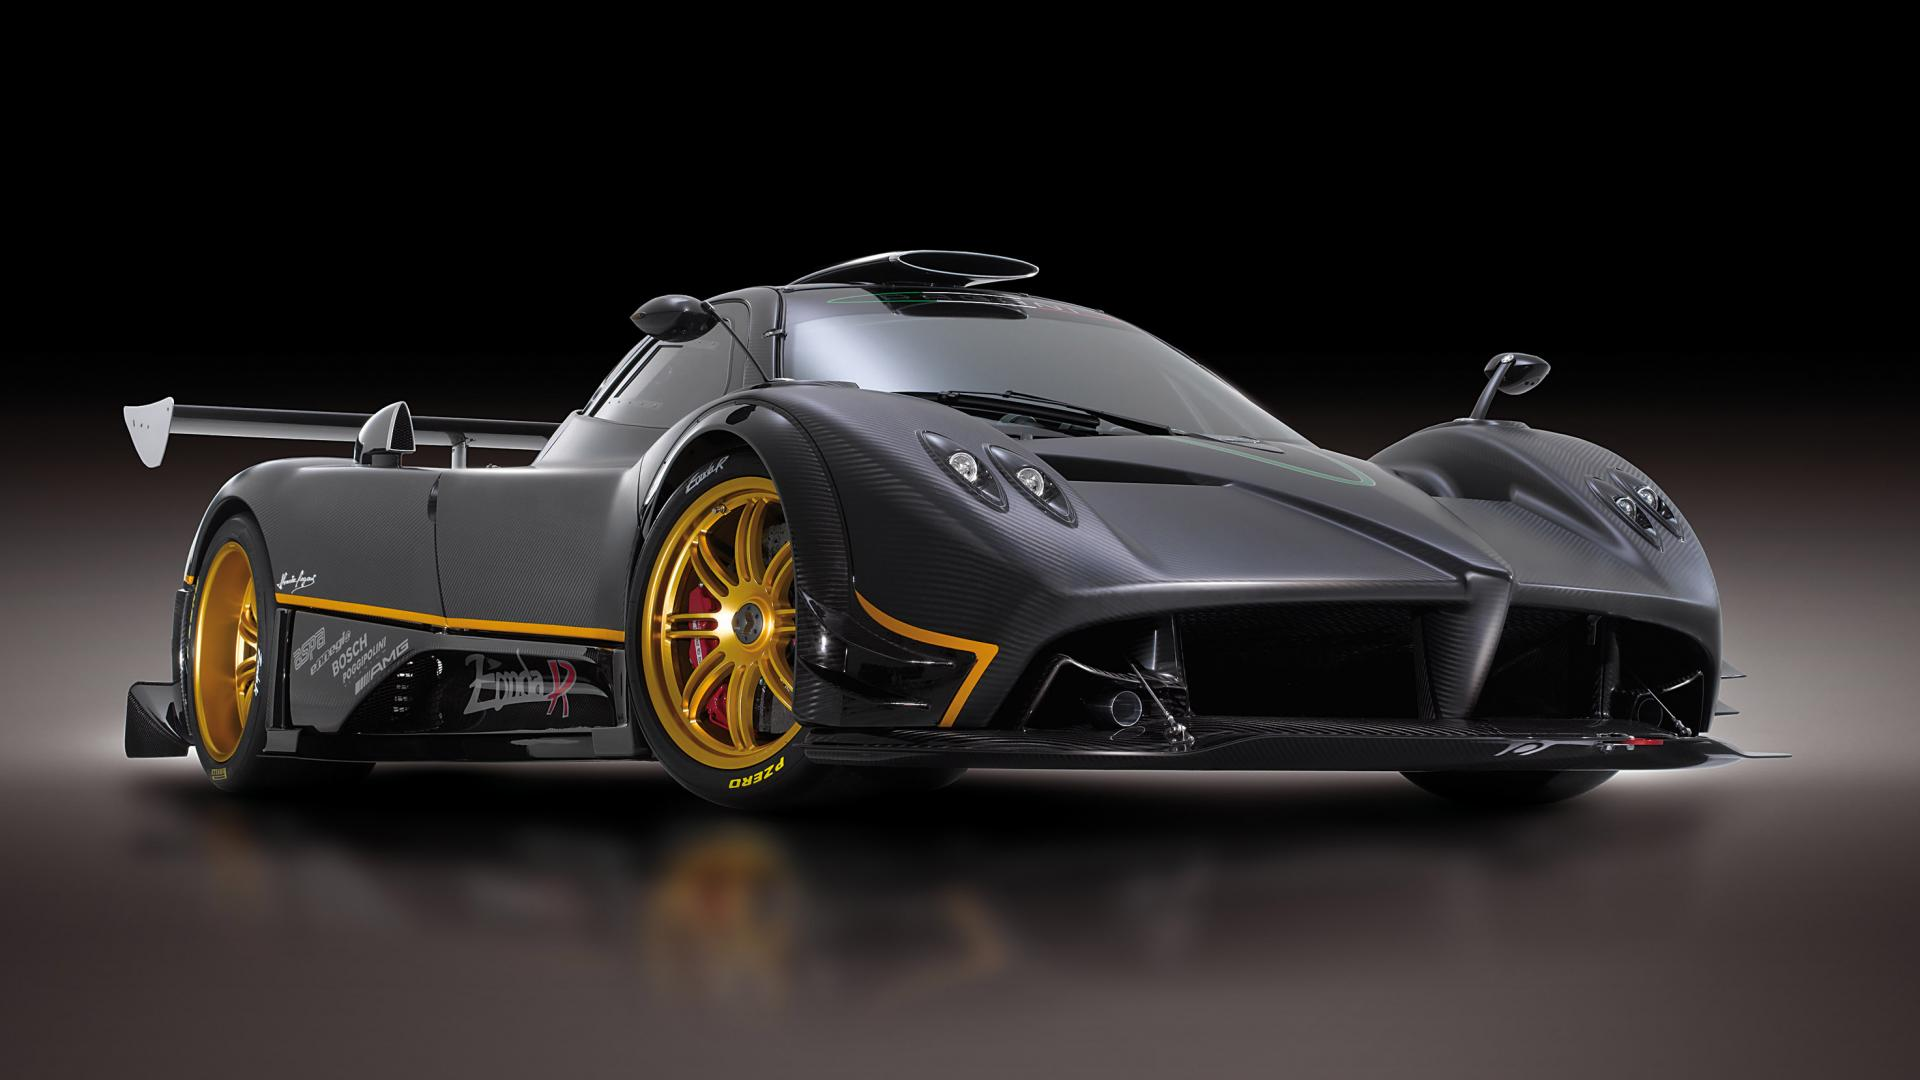 Pagani Zonda R Coo Sports Car   1080p HD Wallpaper Car HD Wallpapers 1920x1080